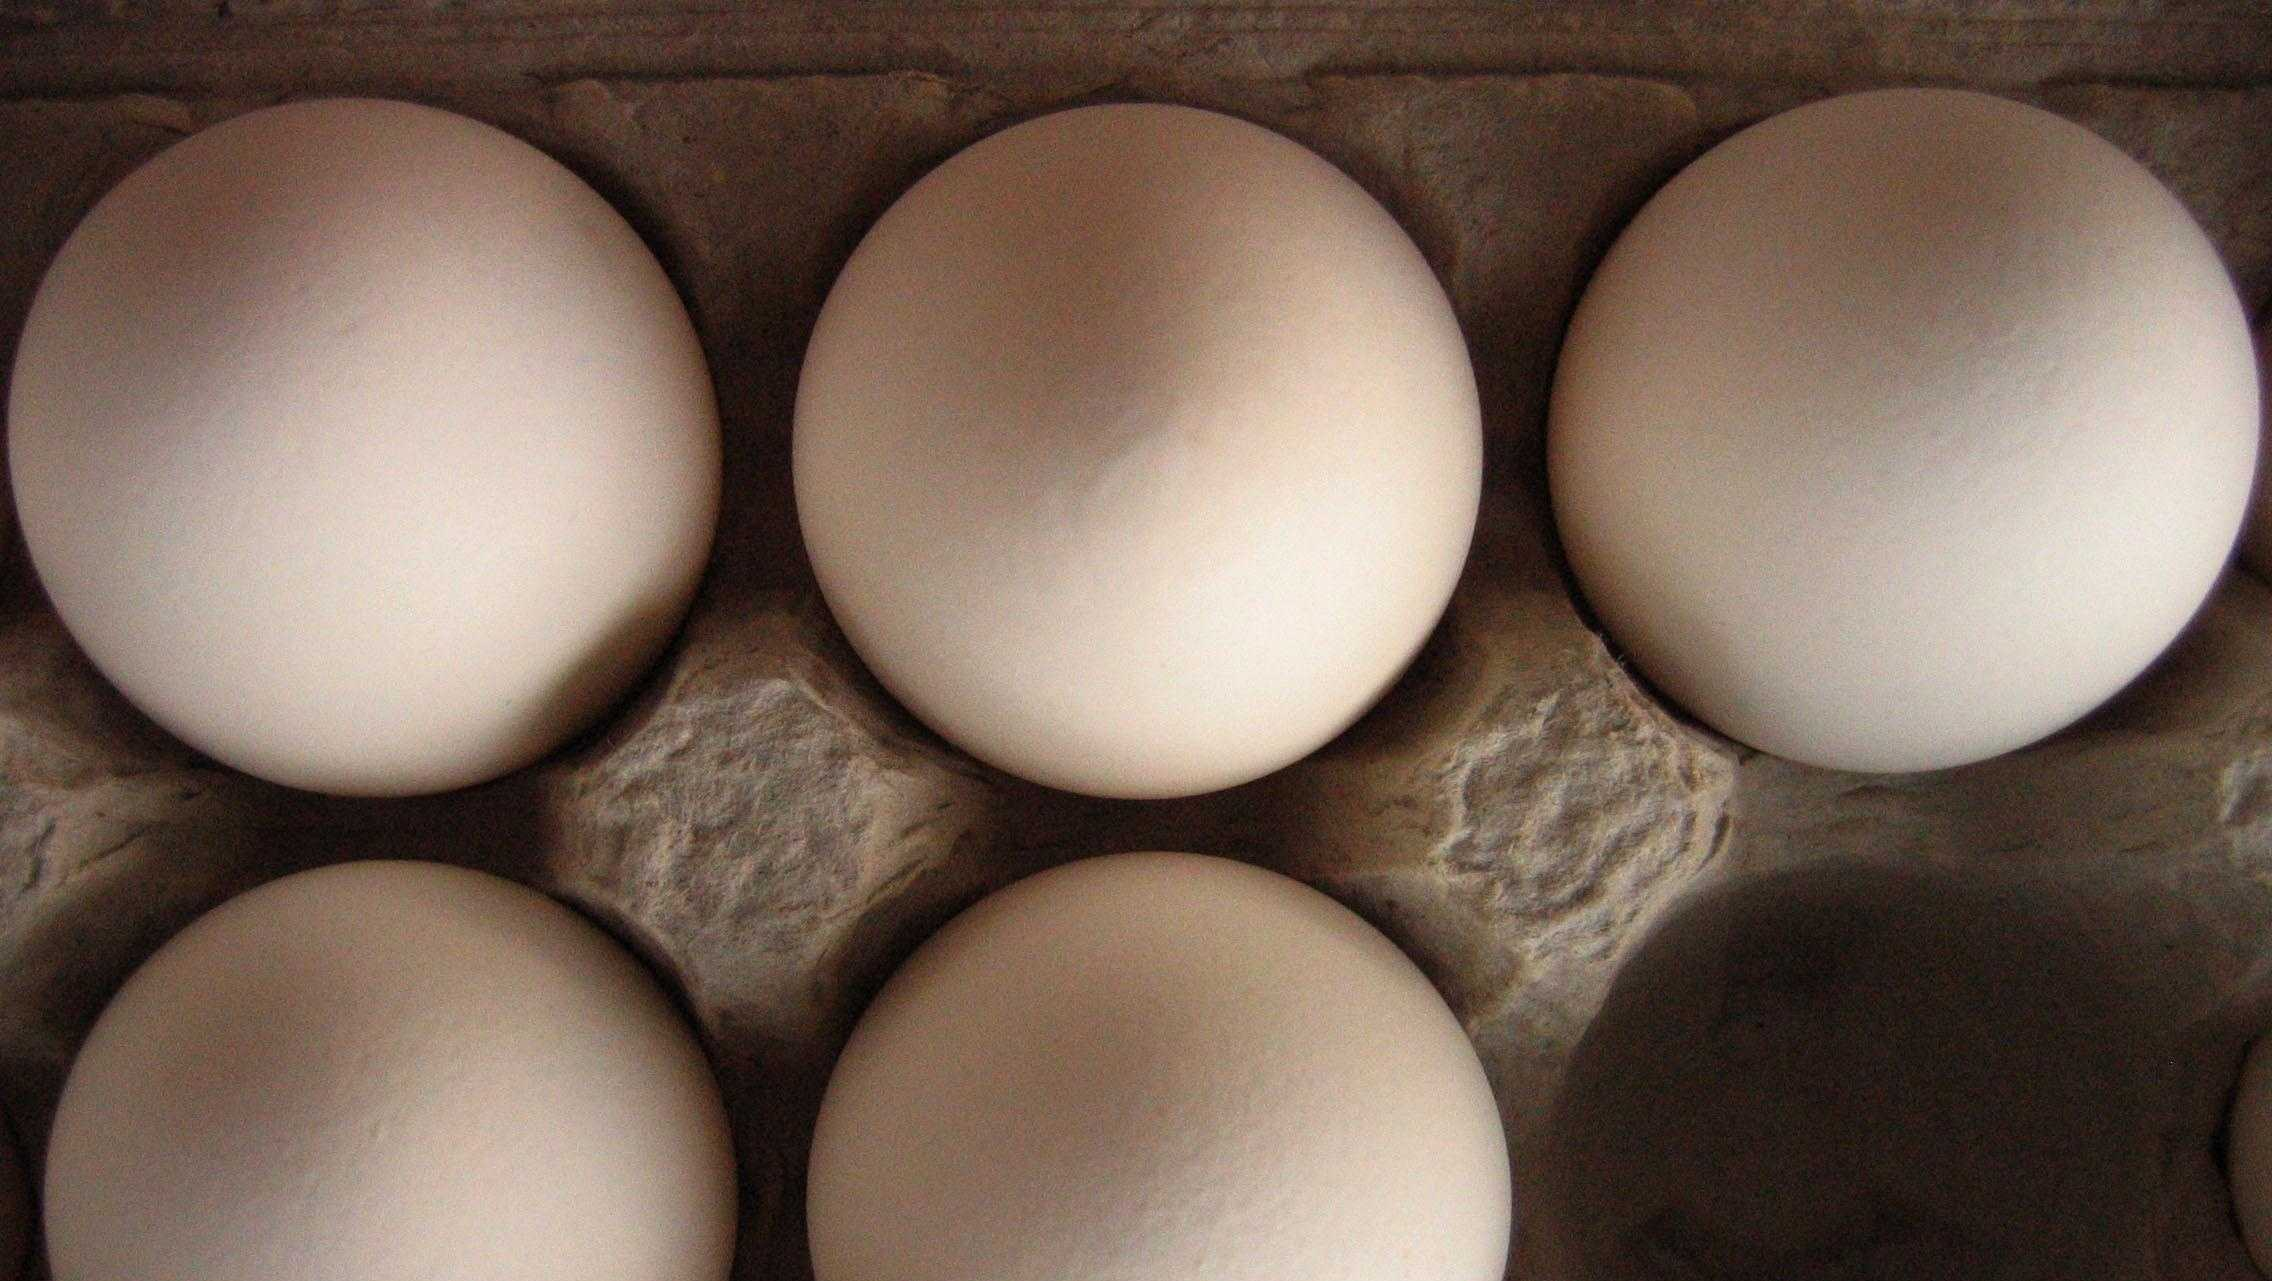 Eggs usually cost a dollar for a half-dozen, and they are a good source of protein.